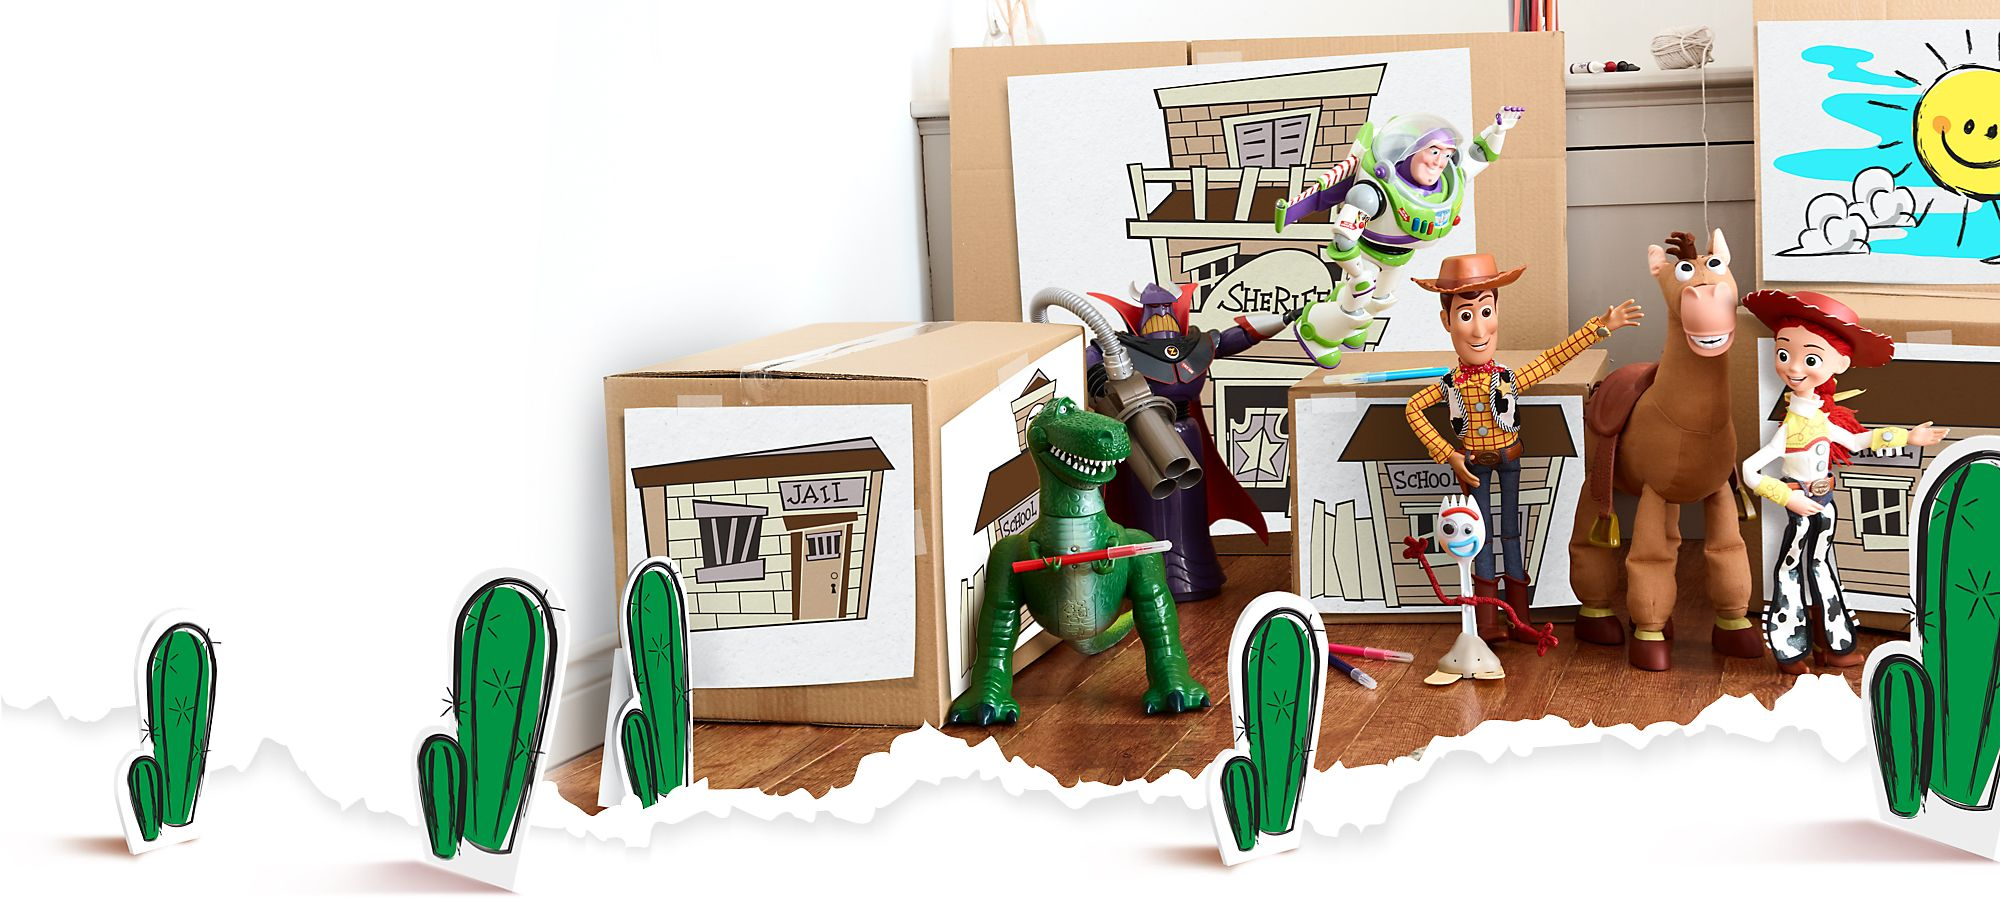 To Infinity and Beyond Join the adventure and explore our